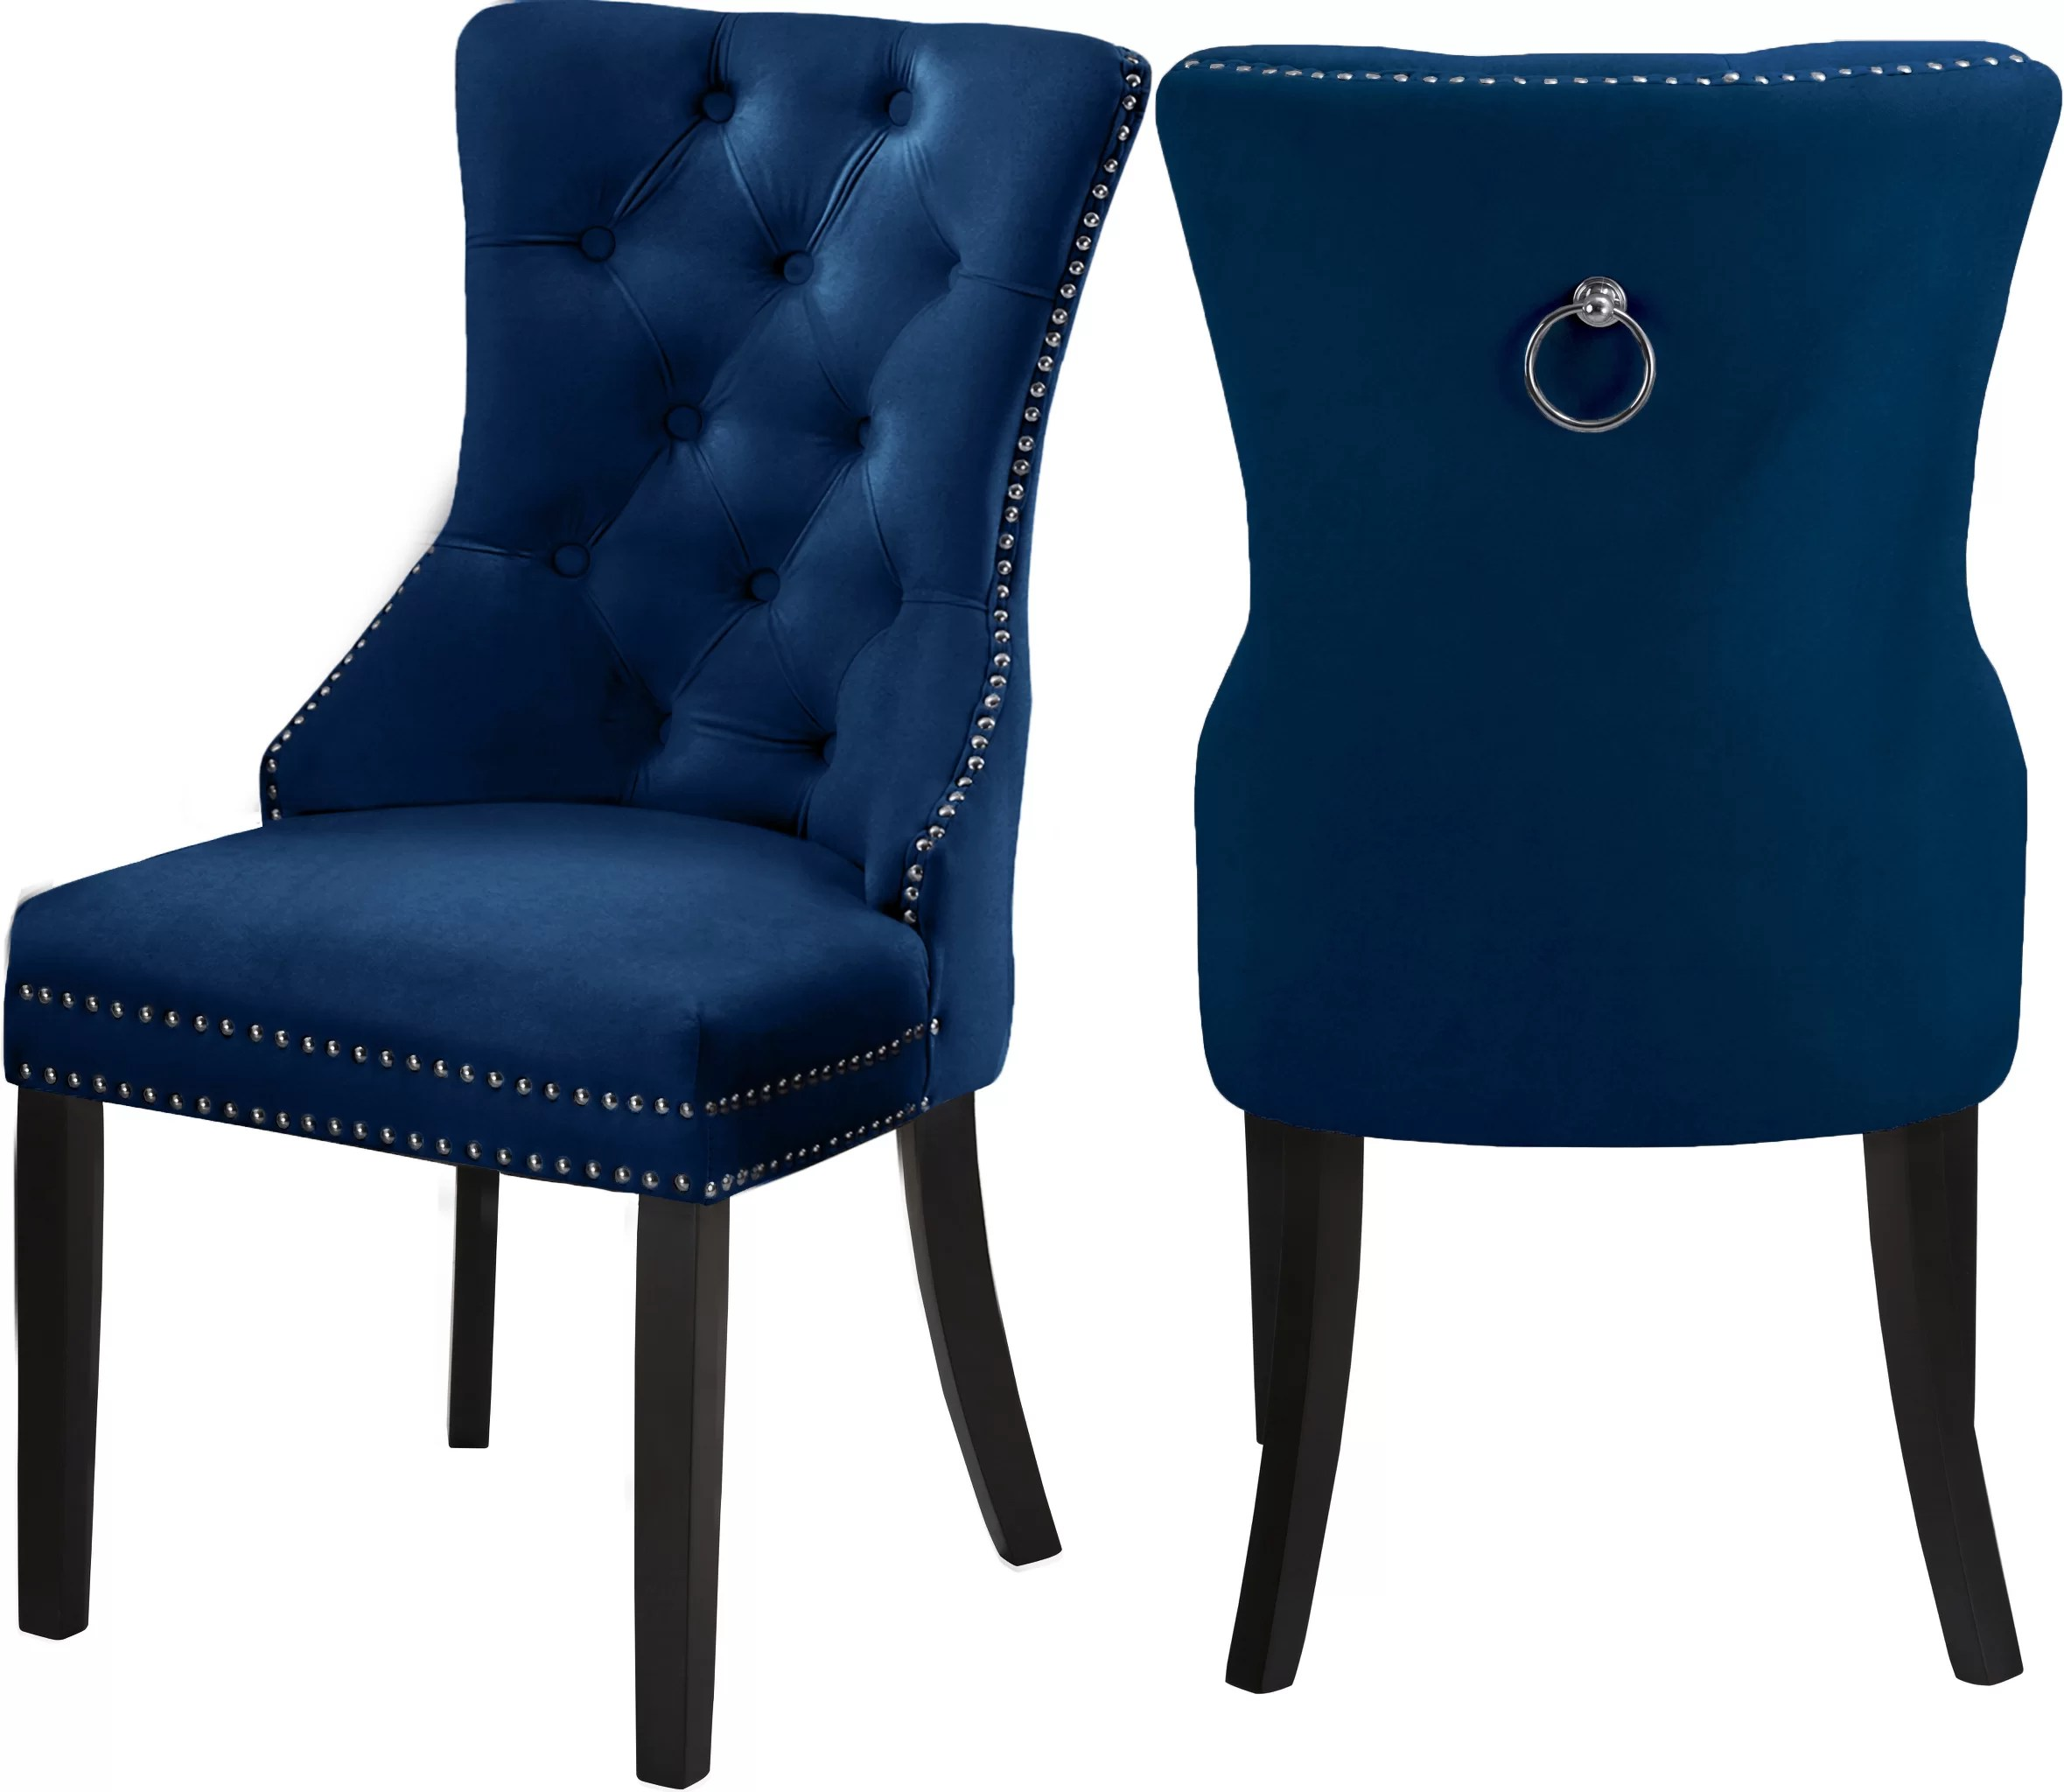 Stonefort Tufted Velvet Upholstered Dining Chair